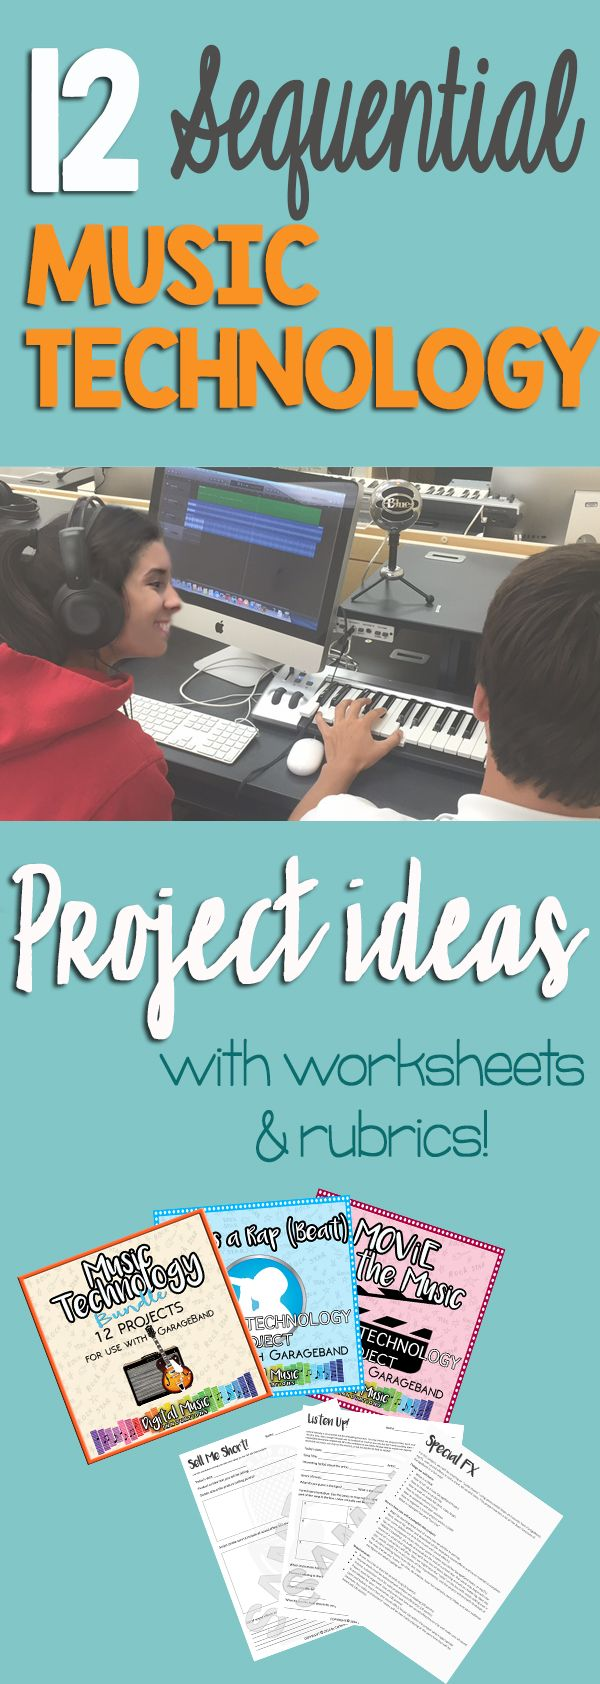 Music Technology Curriculum for middle and high school.  GarageBand project ideas, Logic, Sound Trap, Soundation, Pro Tools, Music lesson plans.